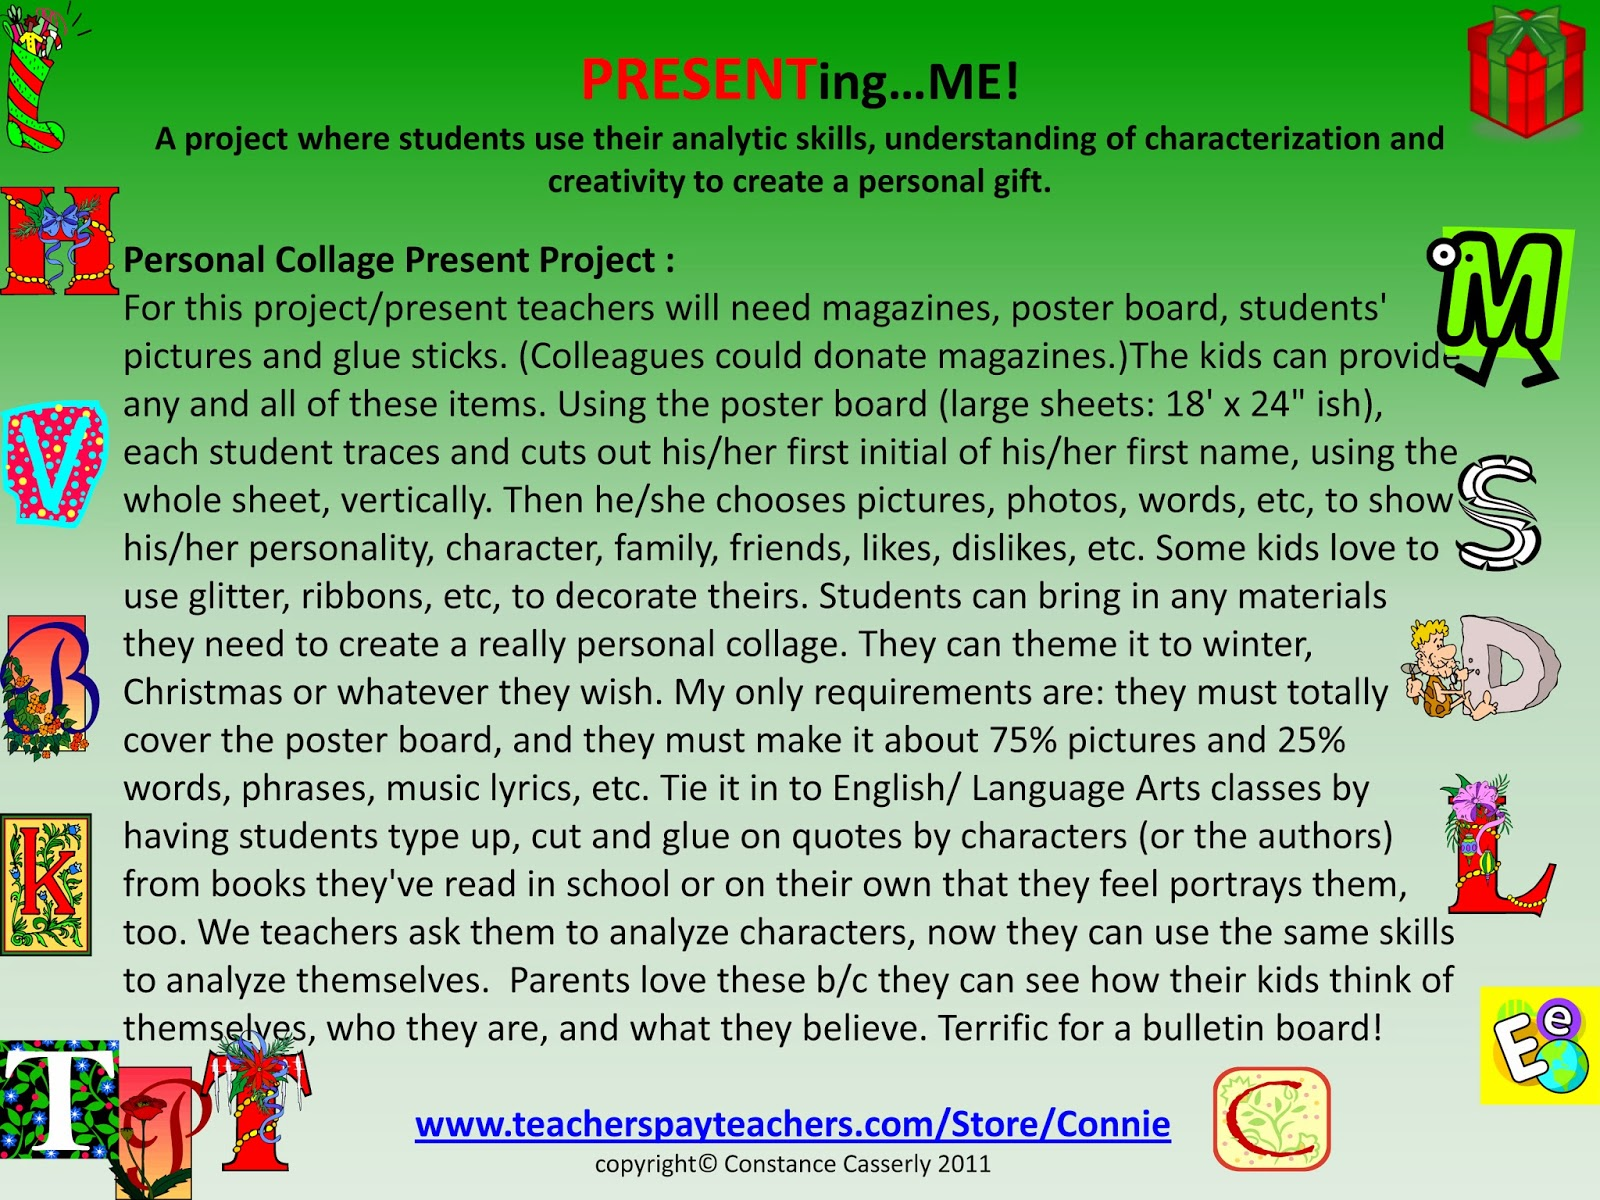 Middle School and High School Activity Language Arts: Personal Collage Present Project